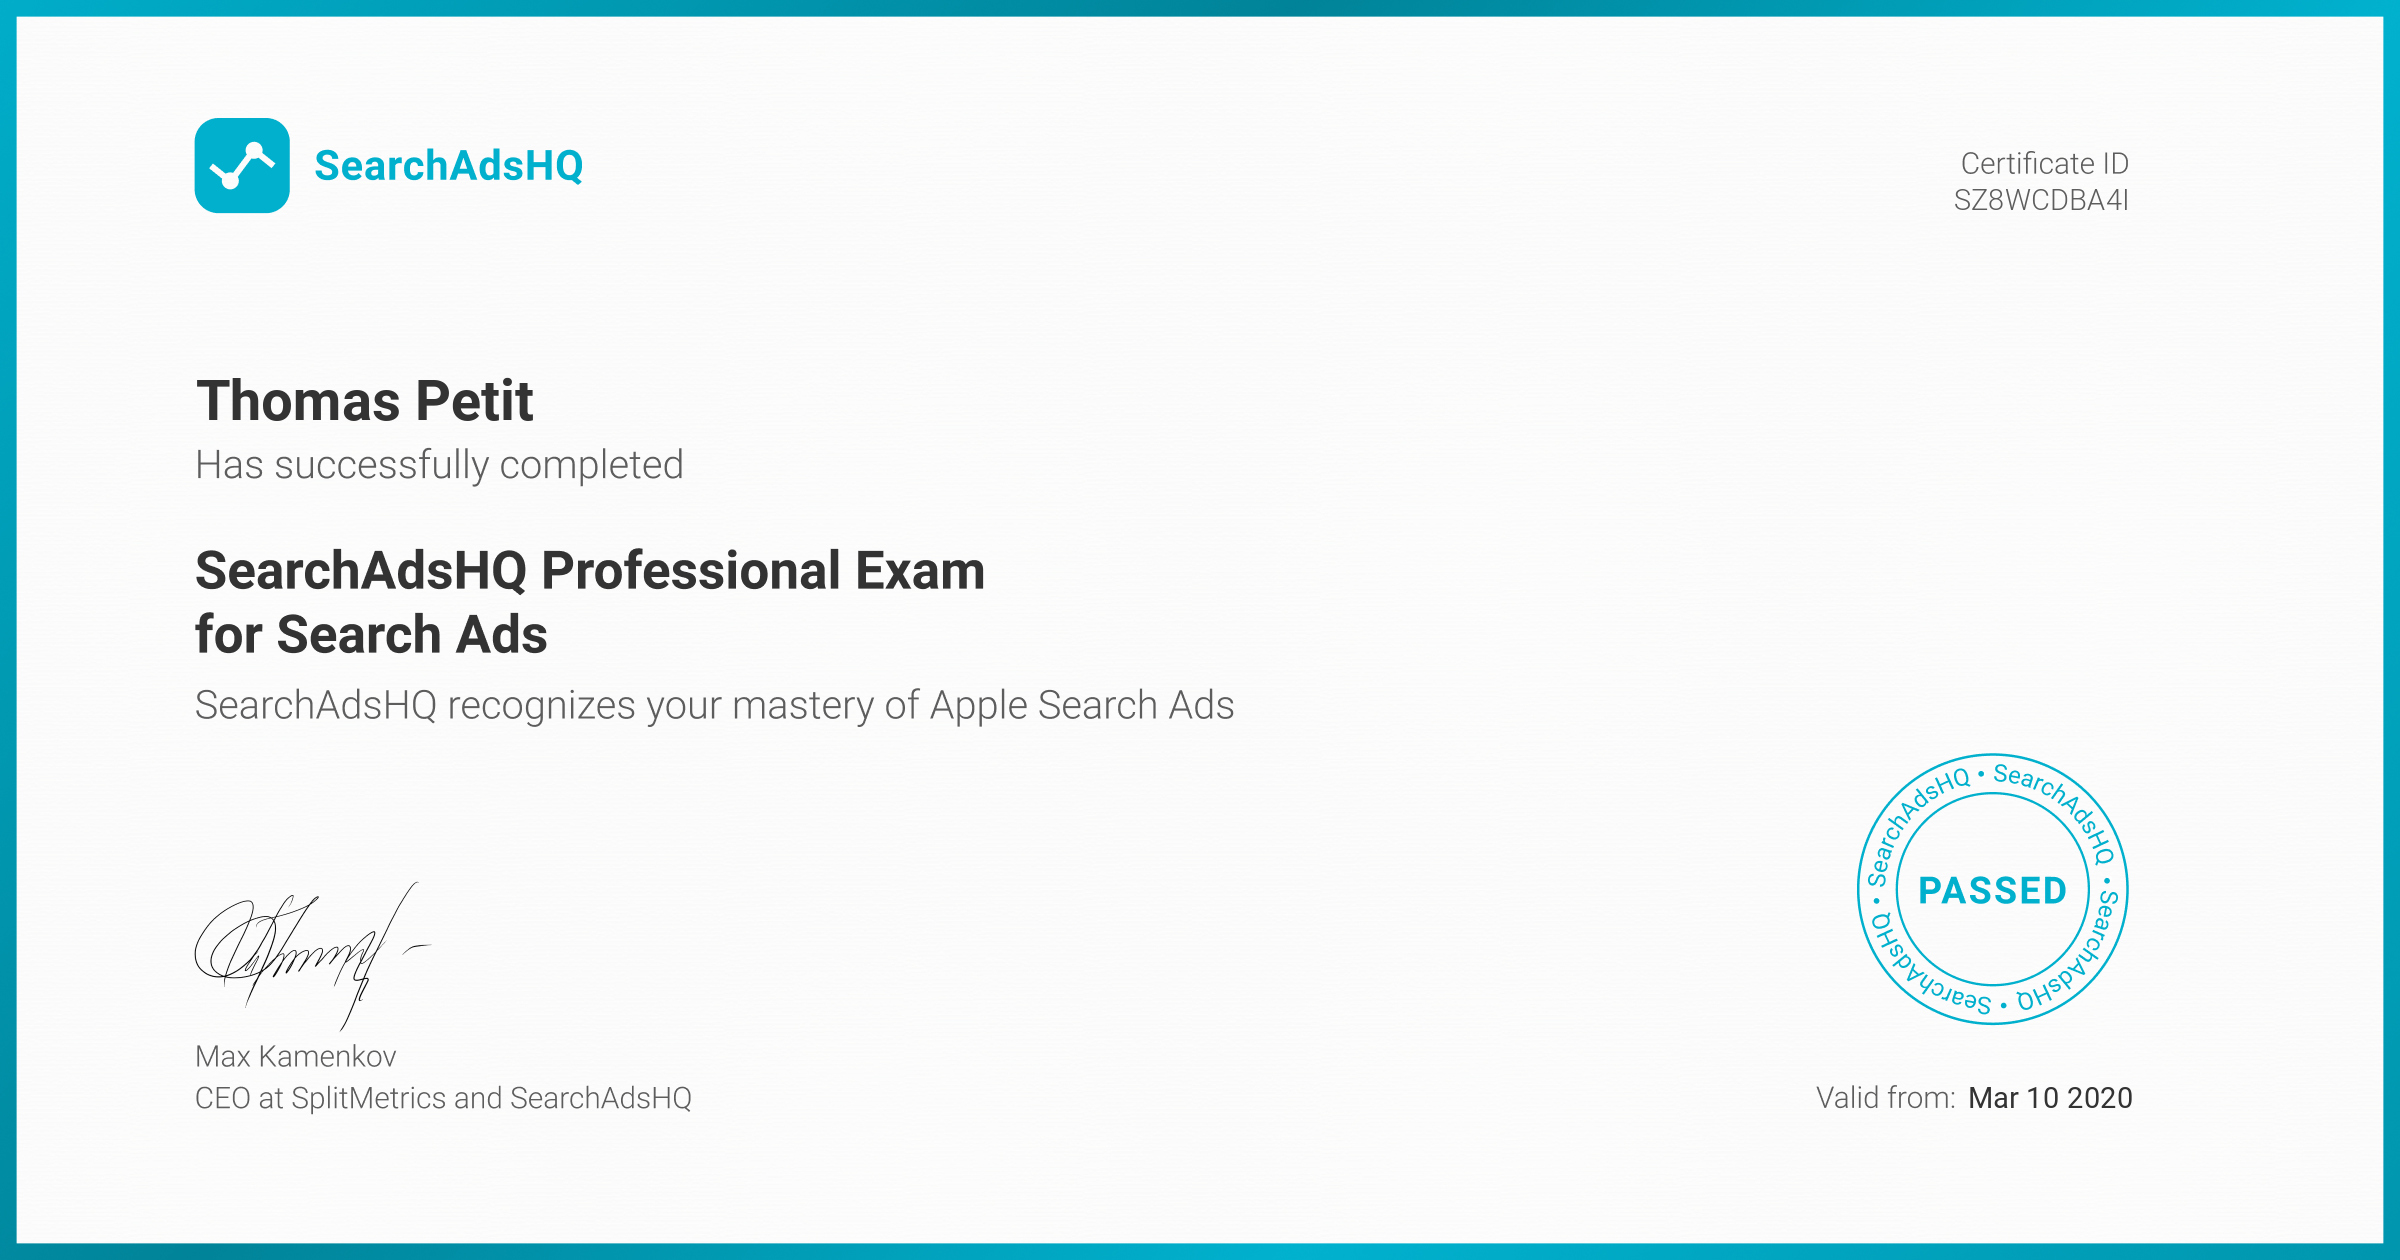 Certificate for Thomas Petit | SearchAdsHQ Professional Exam for Search Ads